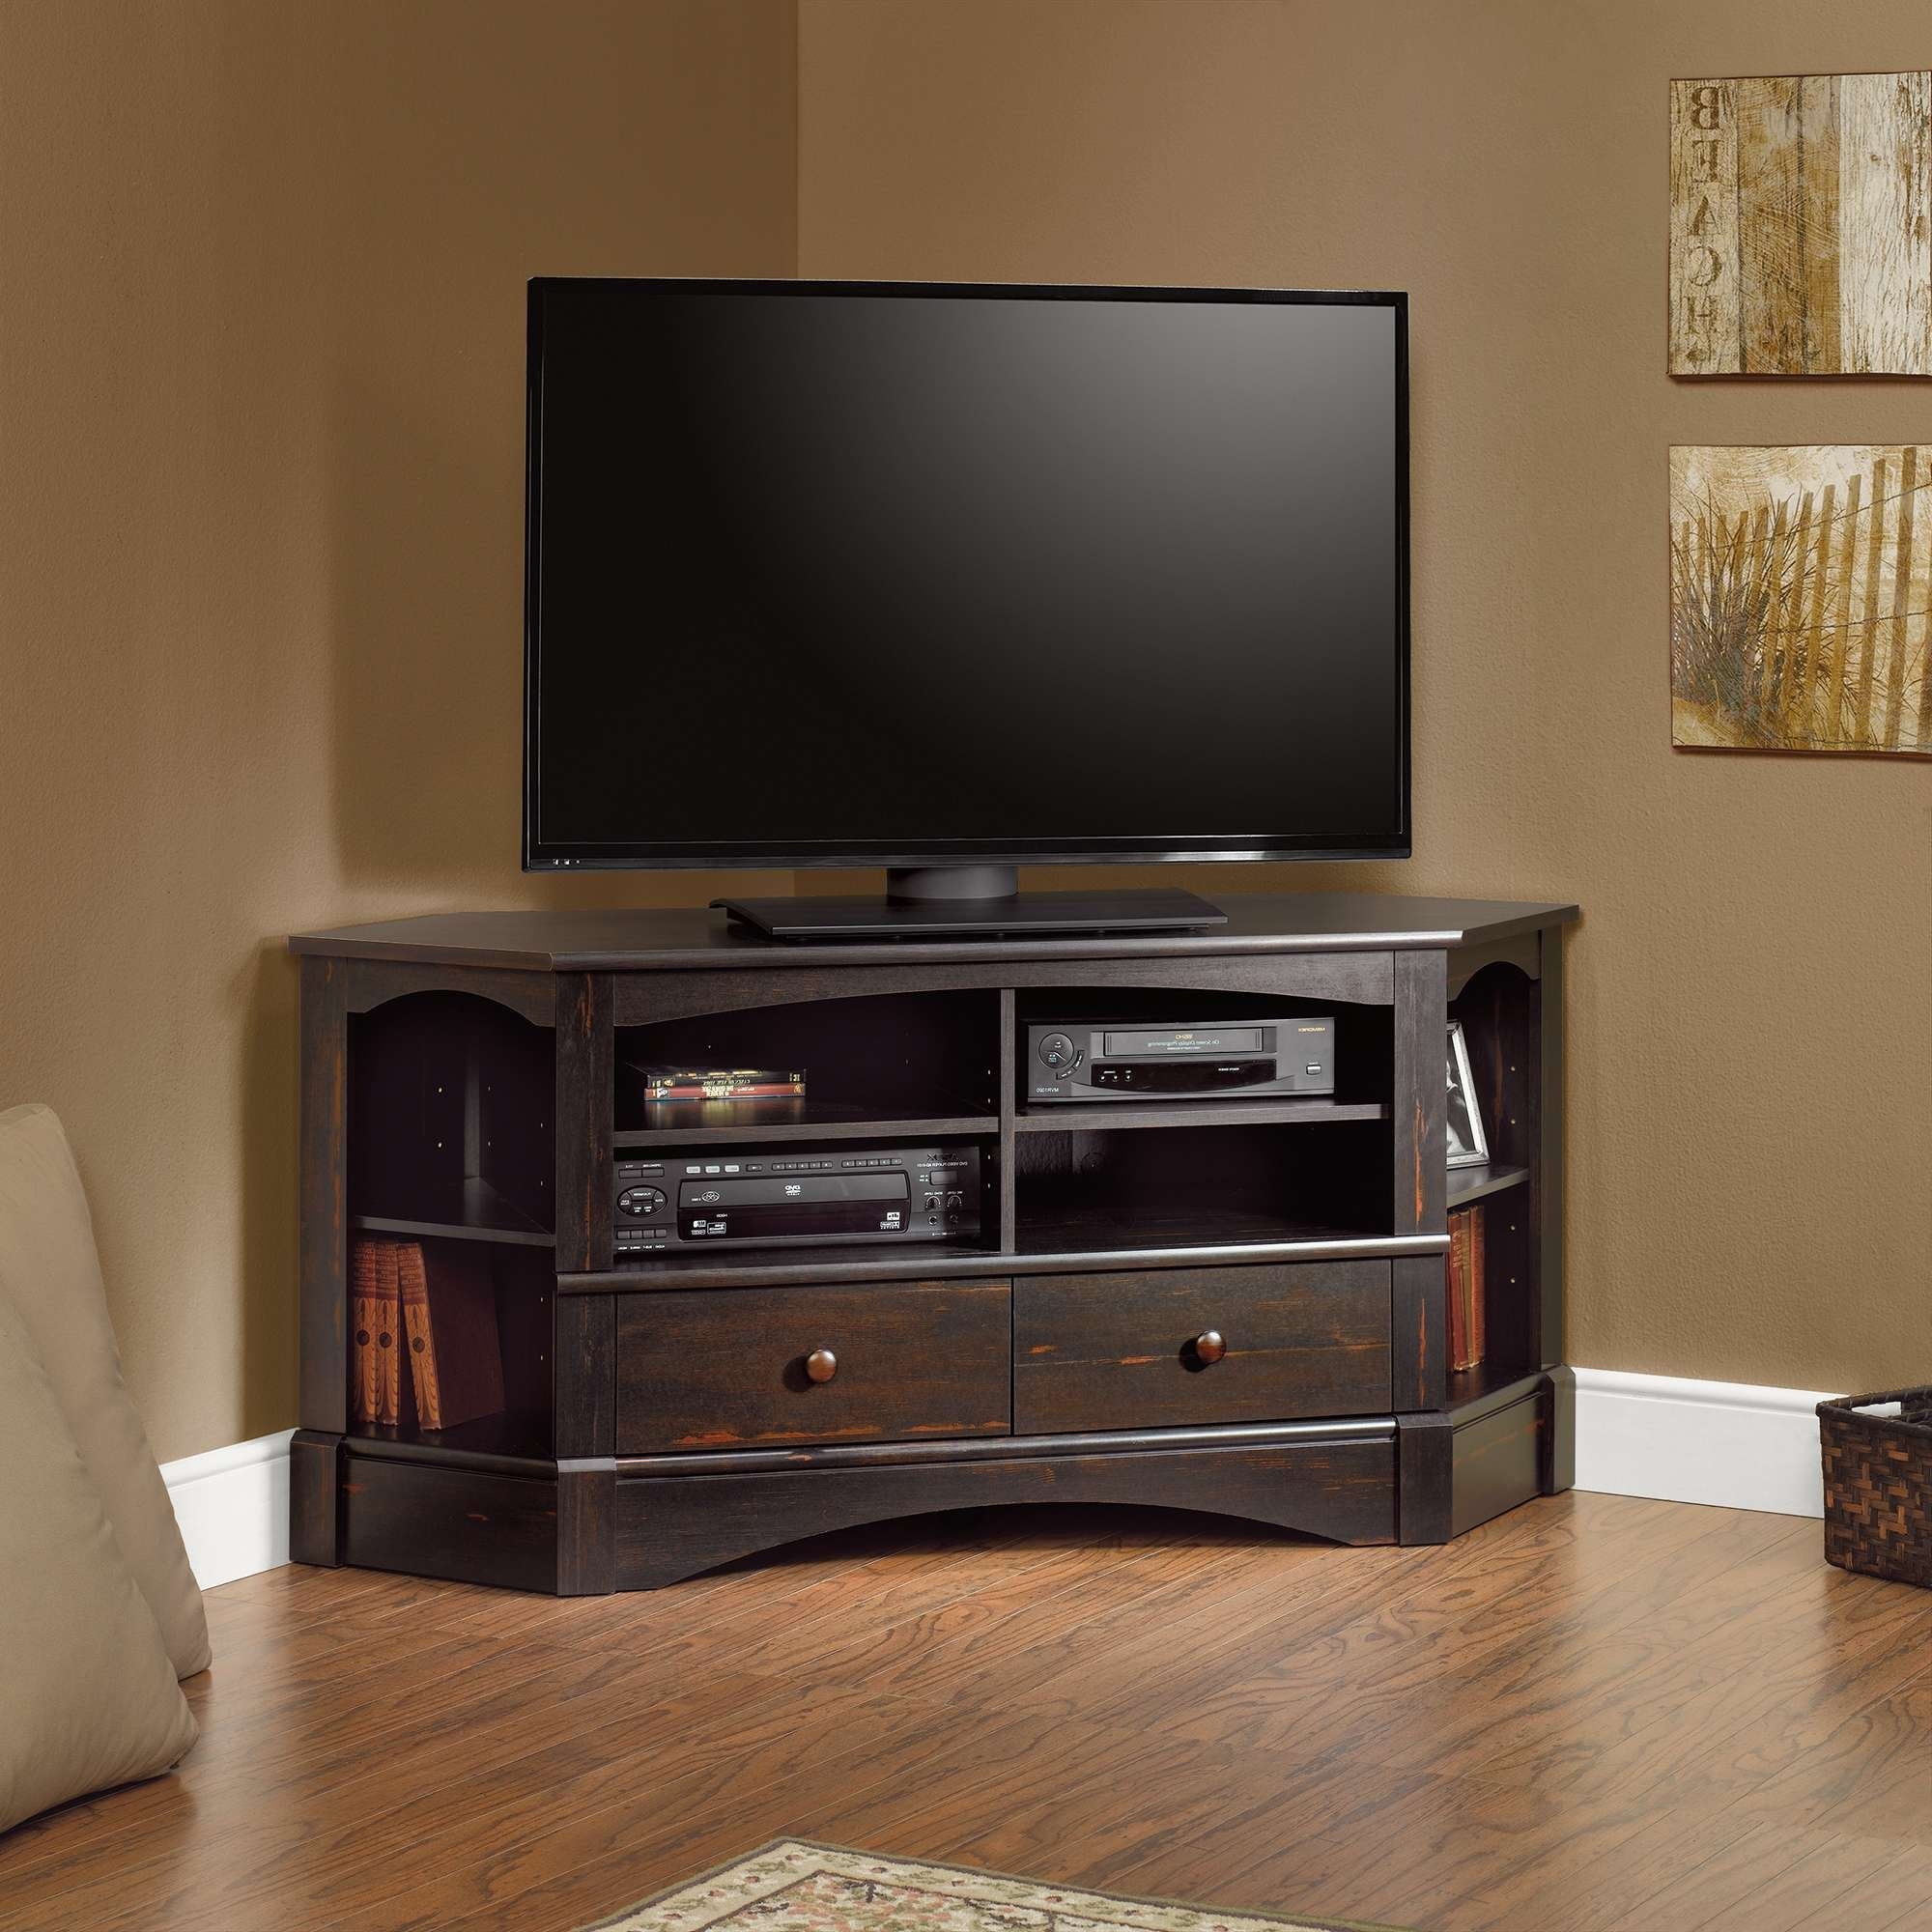 Tall Tv Stand For Bedroom Trends Ideas Corner Creative Cabinets Intended For Tall Tv Cabinets Corner Unit (View 12 of 20)